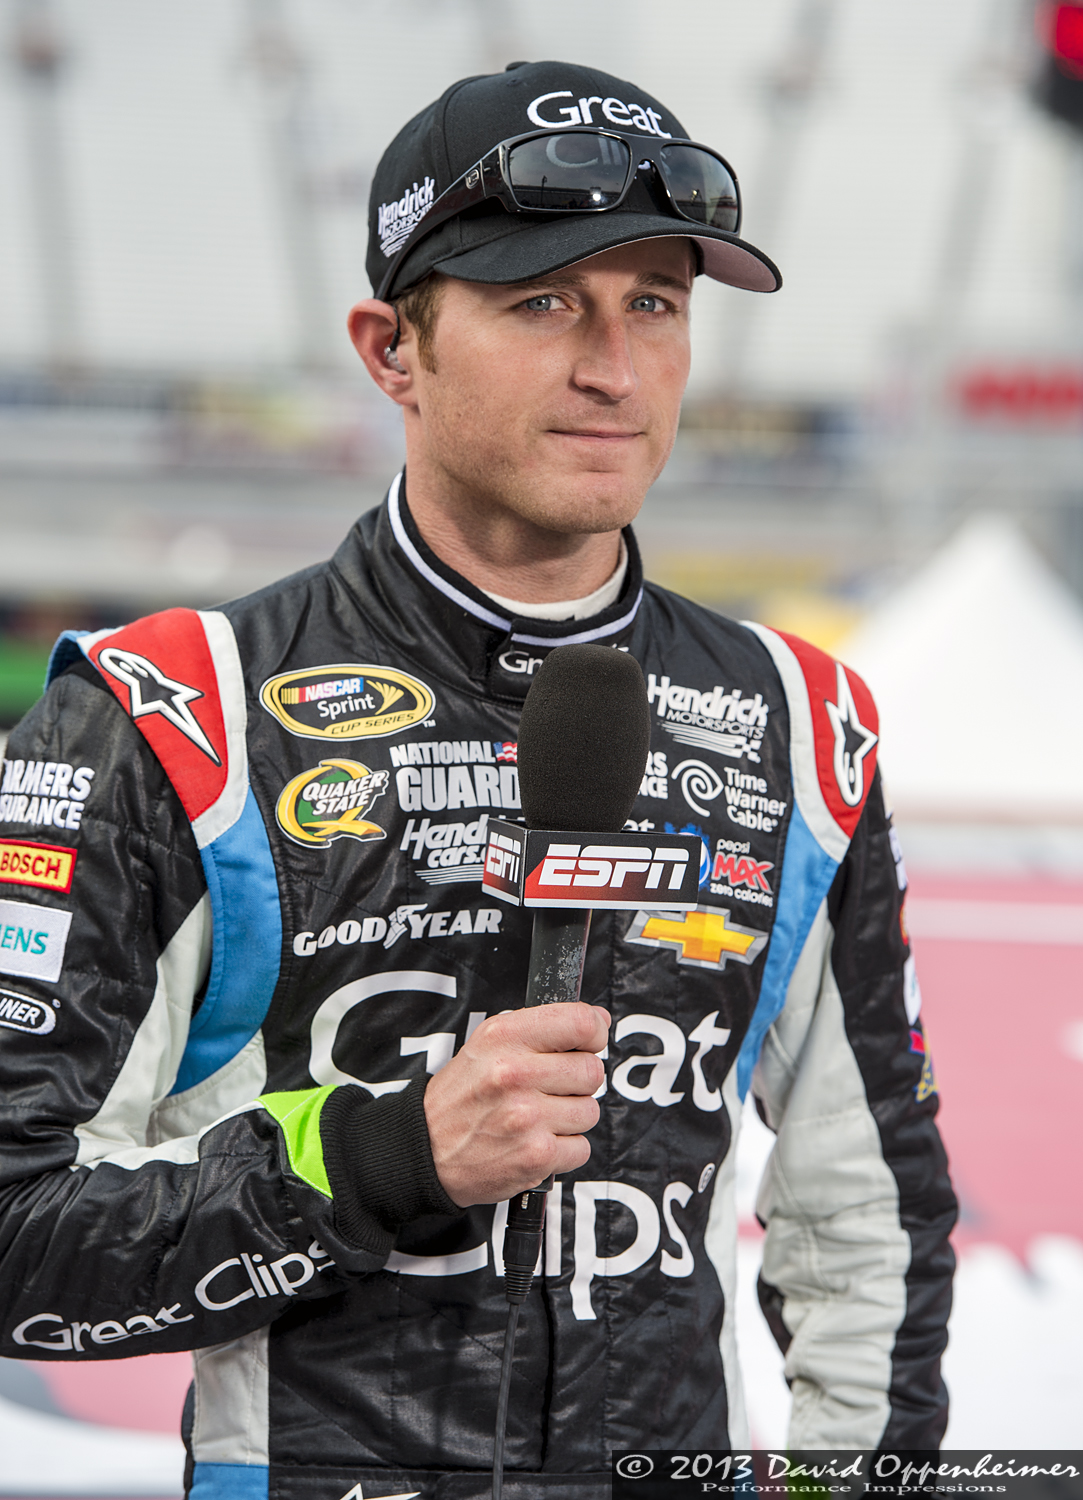 Kasey Kahne at Bristol Motor Speedway during NASCAR Sprint Cup Food City 500